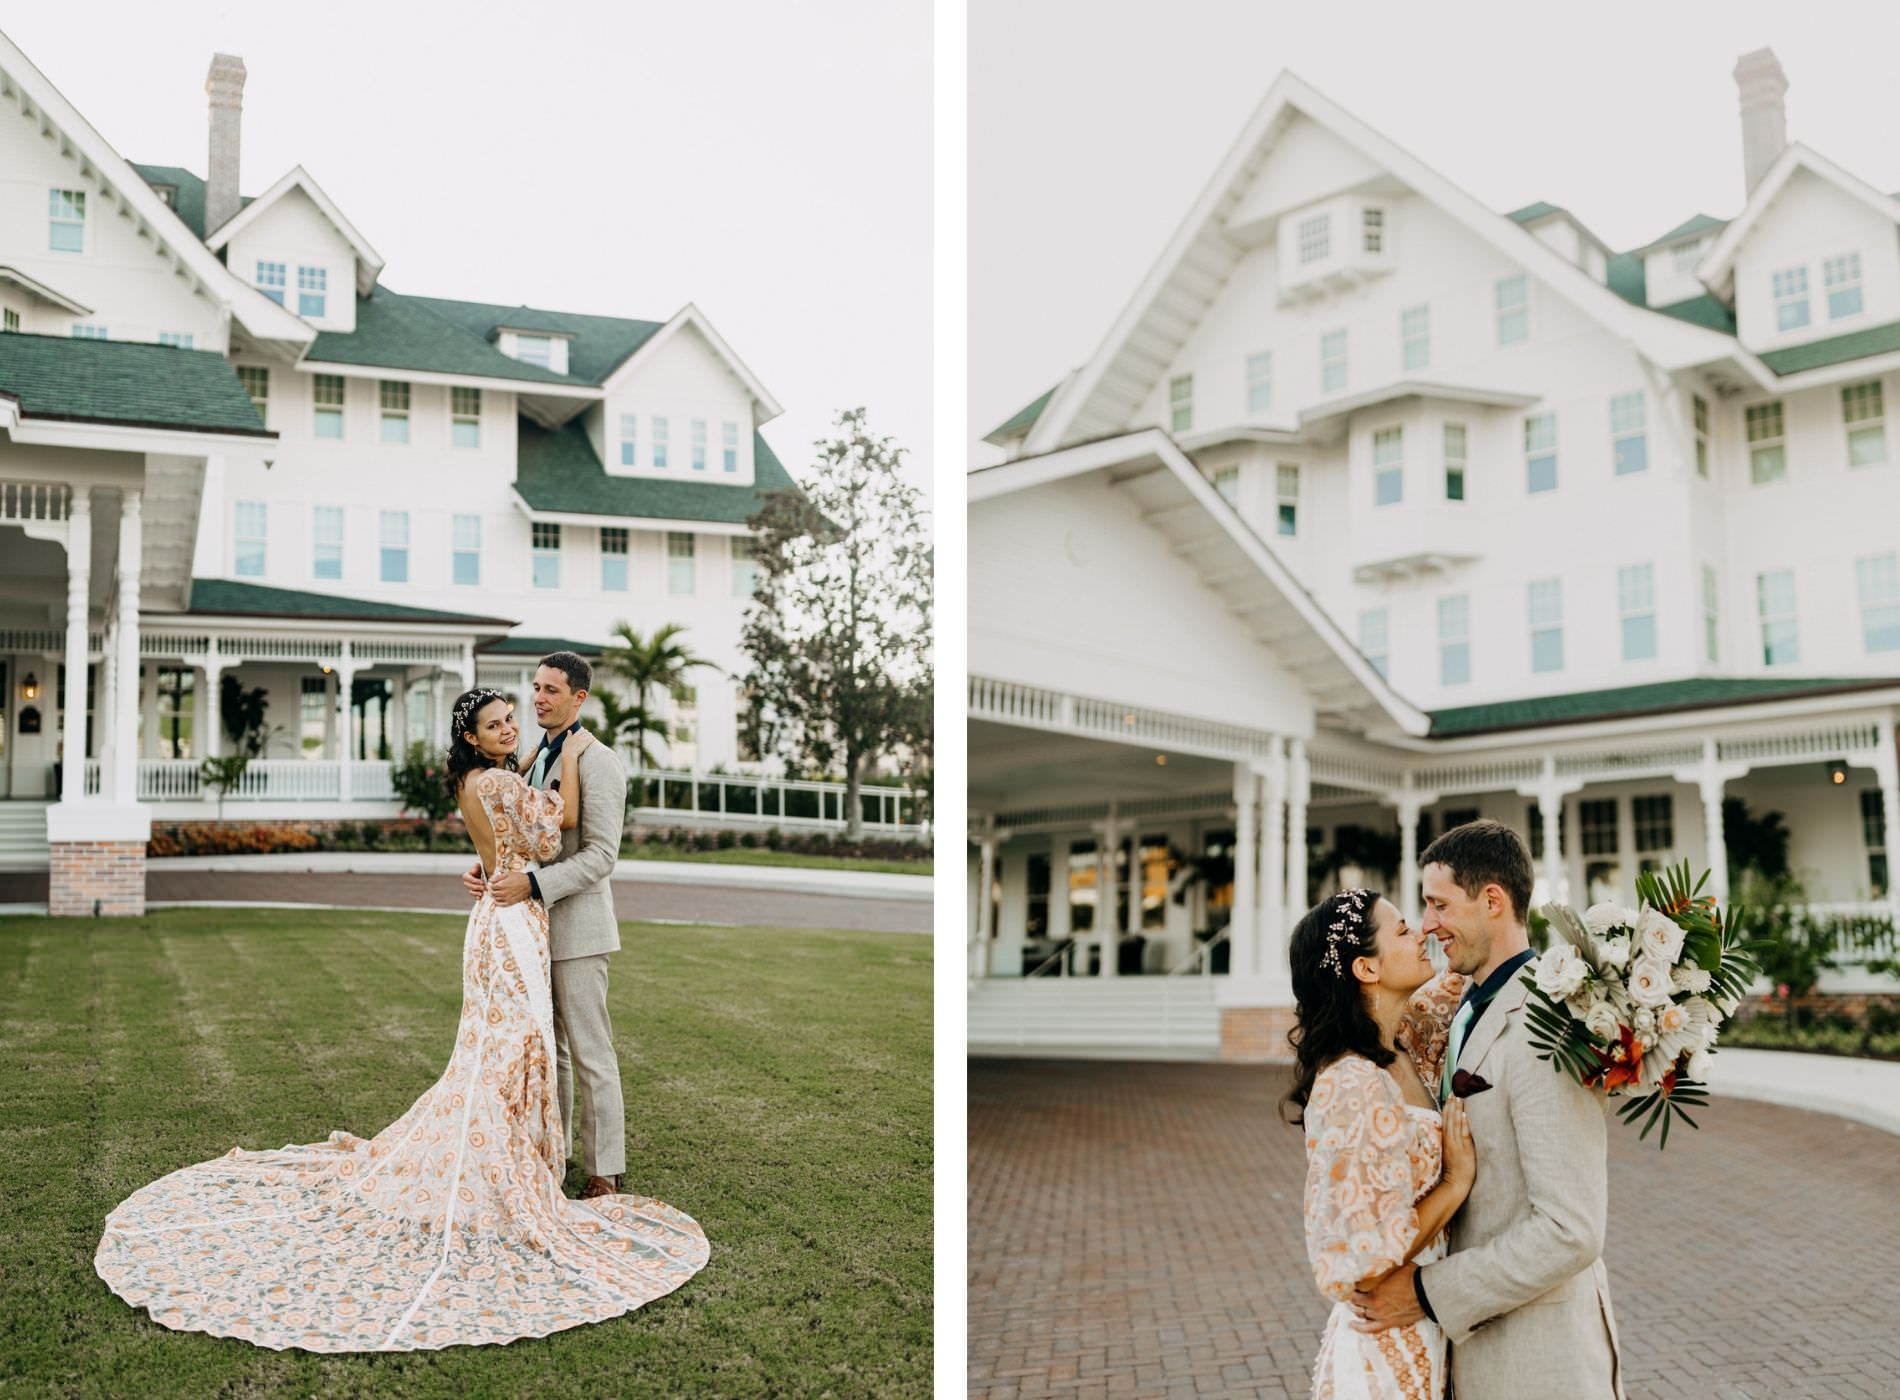 Outdoor Bride and Groom Wedding Portrait at Historic Clearwater Venue Belleview Inn   Boho Gold Bronze Embroidered Overlay Wedding Dress Bridal Gown with Illusion Sleeves and Train   Groom in Grey Khaki Linen Suit   Amber McWhorter Photography